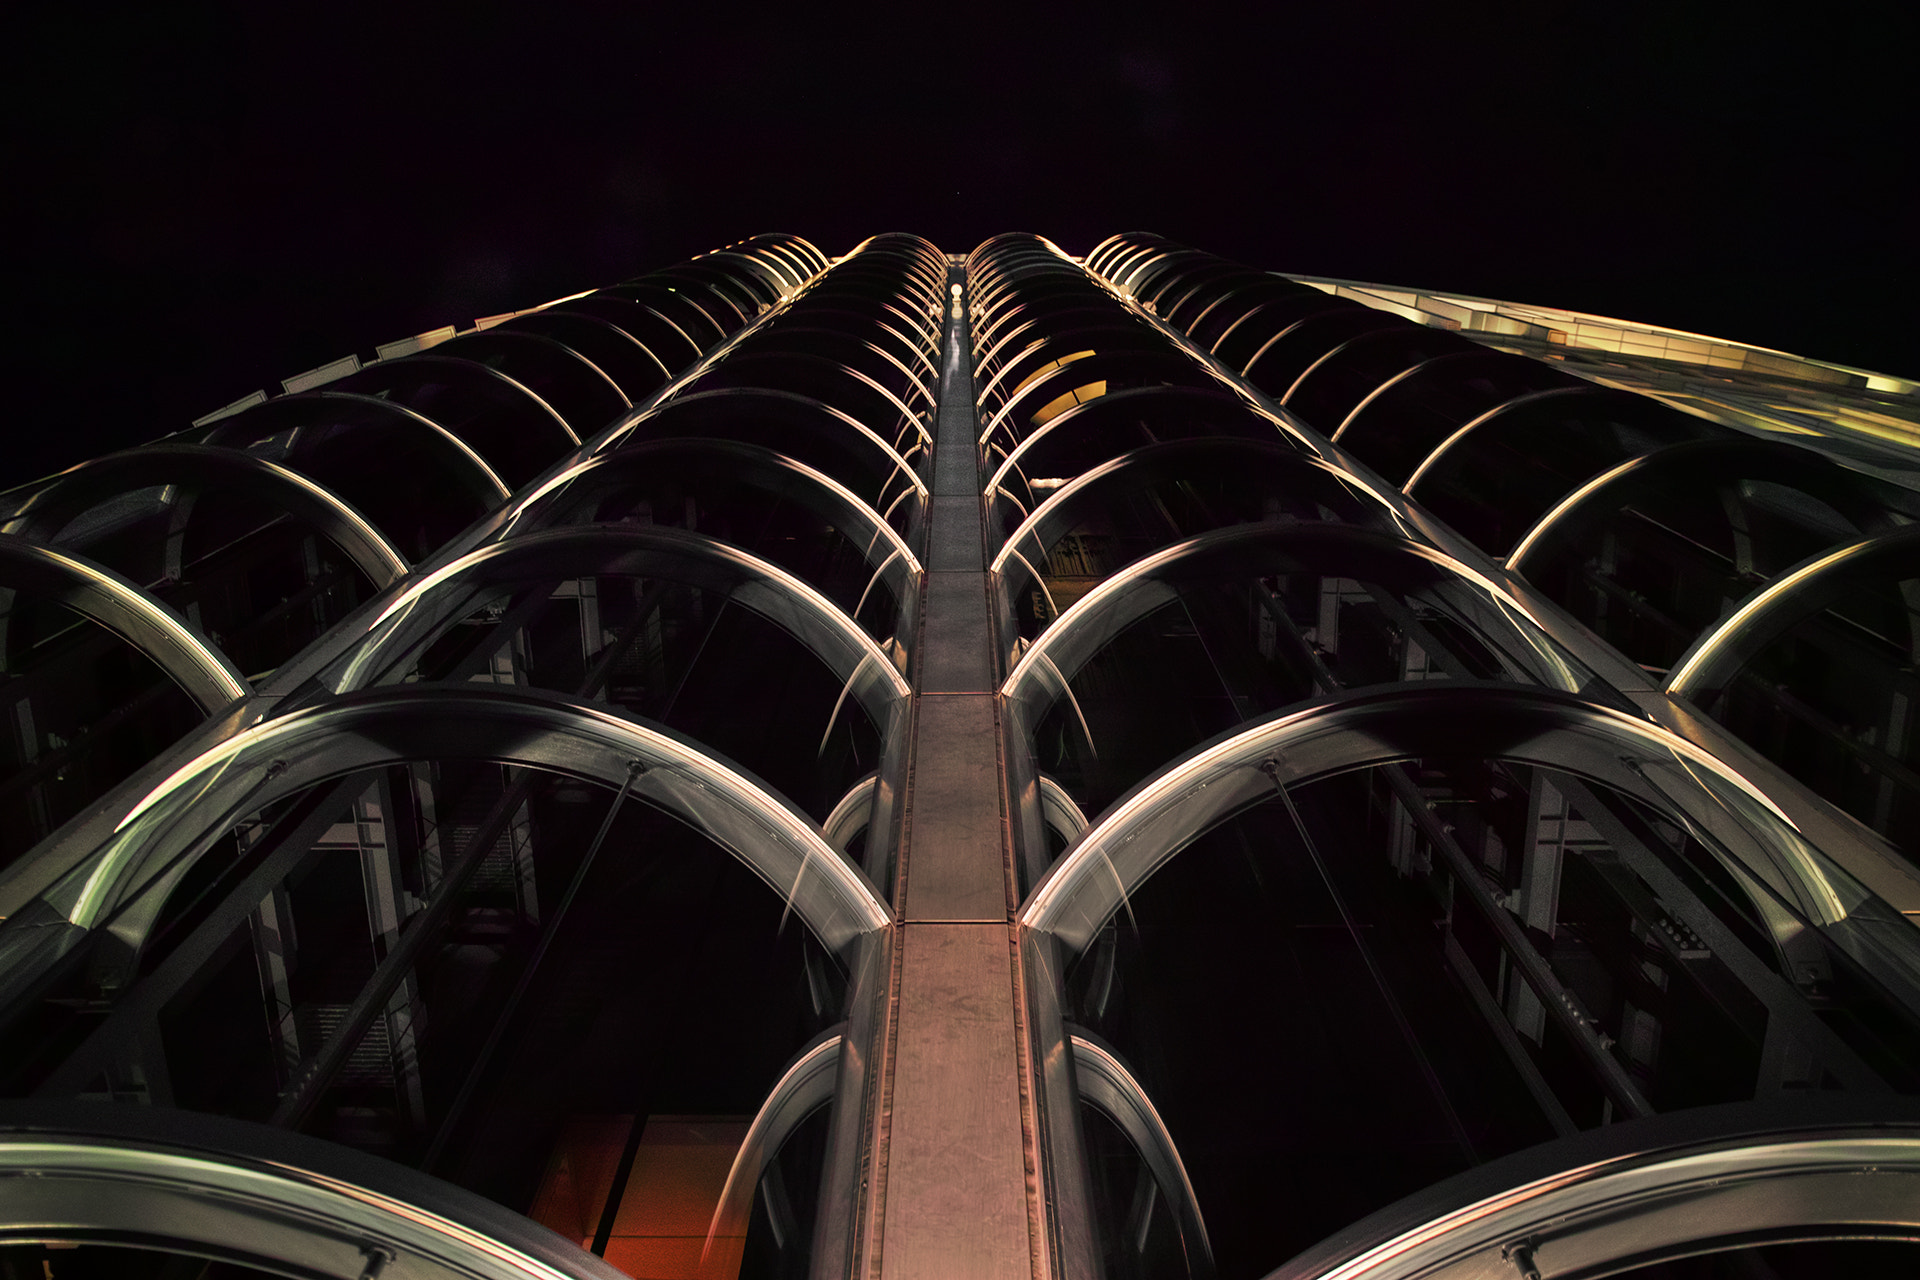 Photograph Fishbone by Azul Obscura on 500px